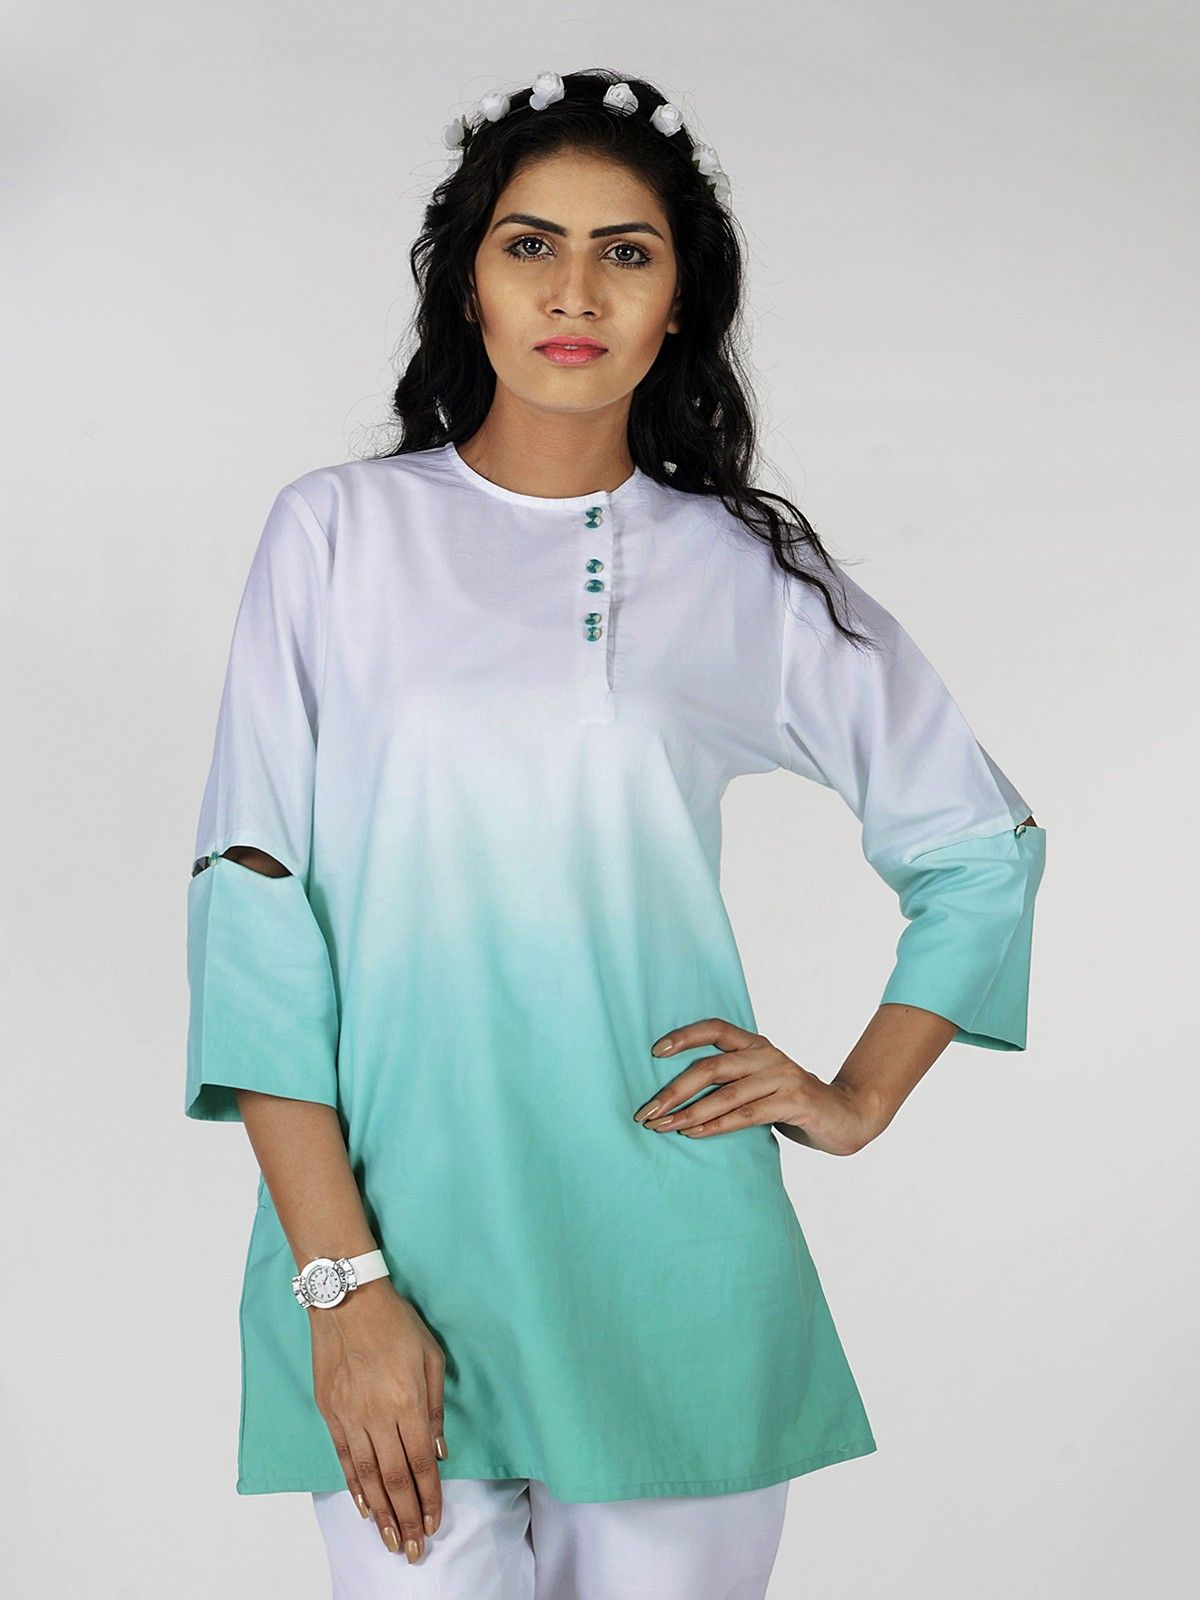 Maldives Mint Ombre Top